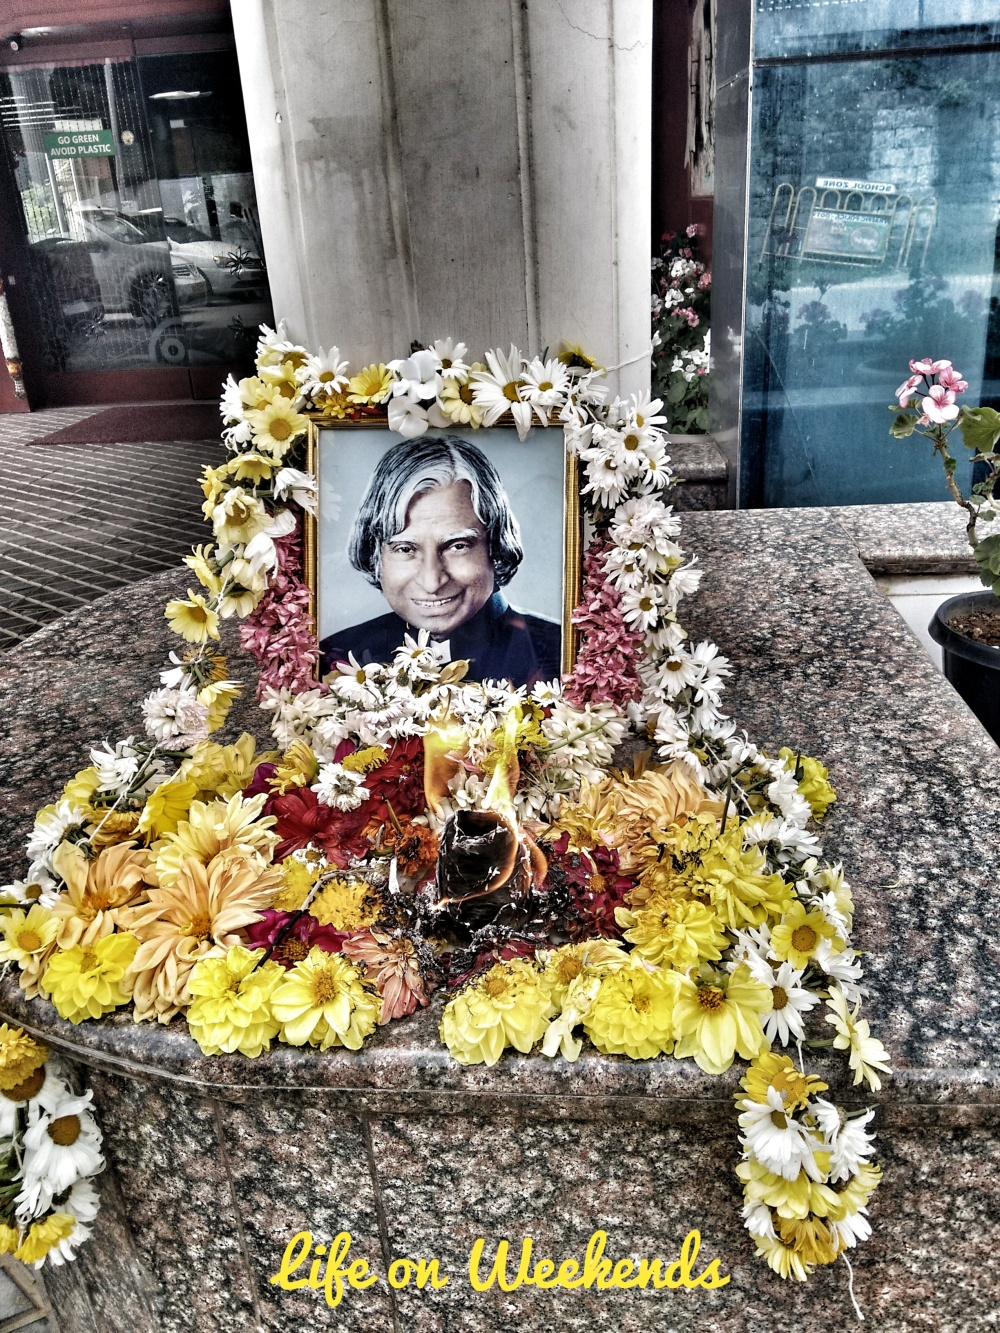 In the fond memory of Dr. APJ Abdul Kalam in Ooty @Life on Weekends